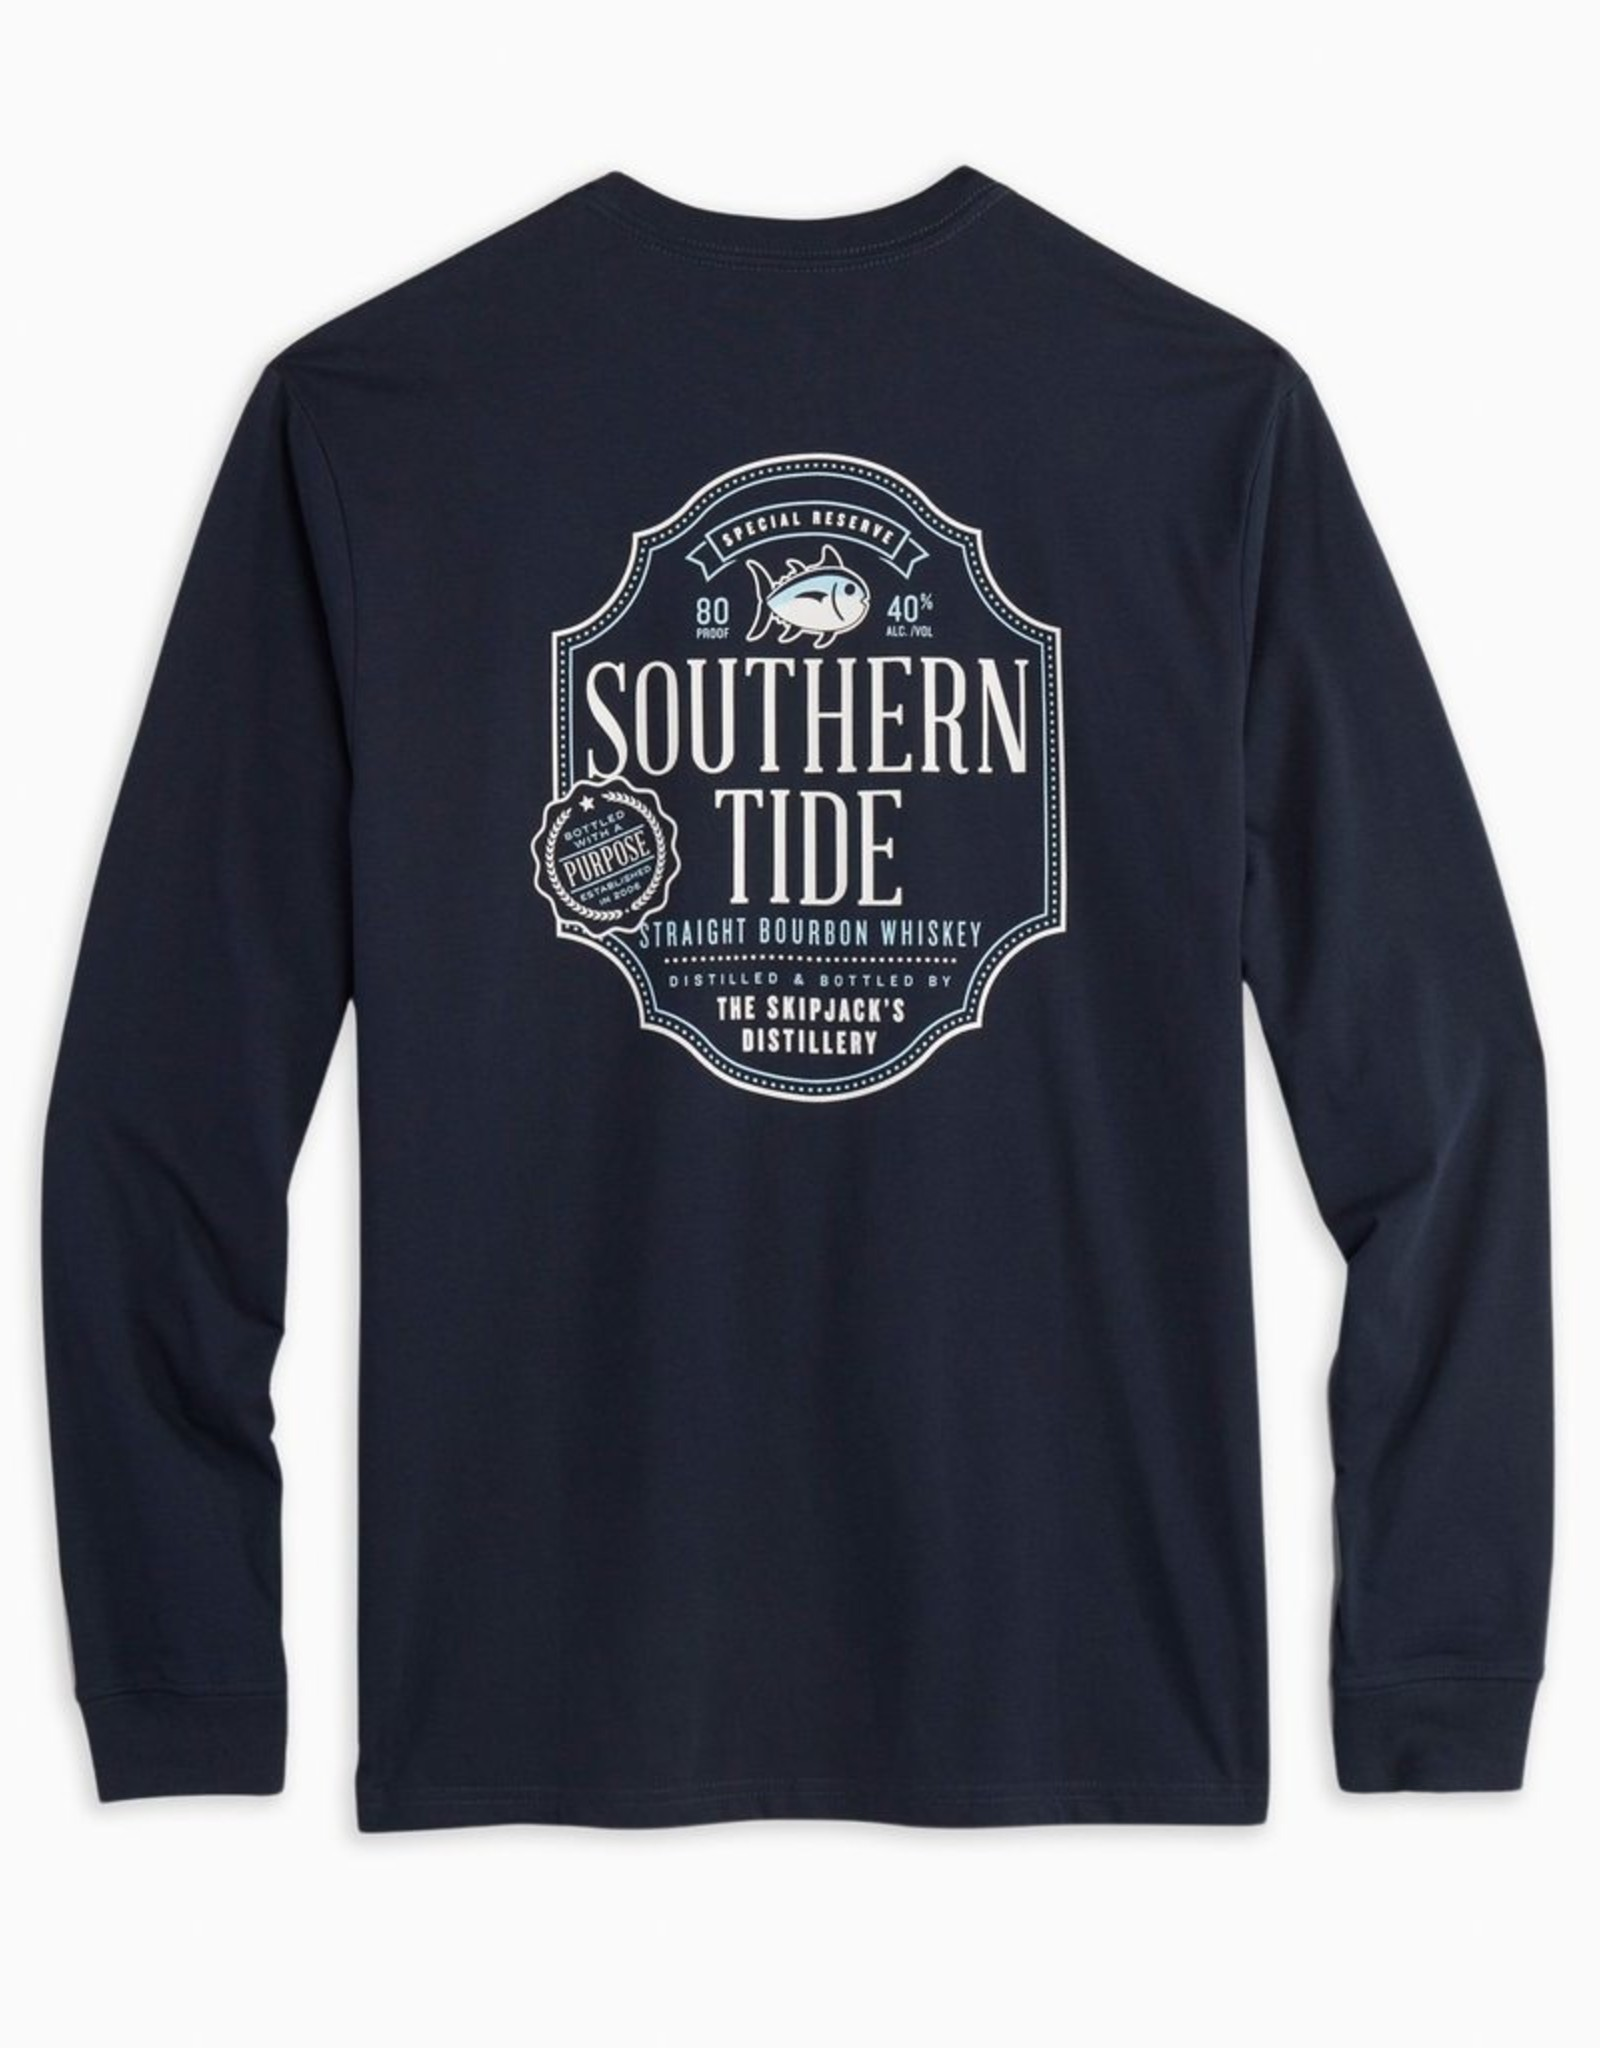 Southern Tide Special Reserve Tee